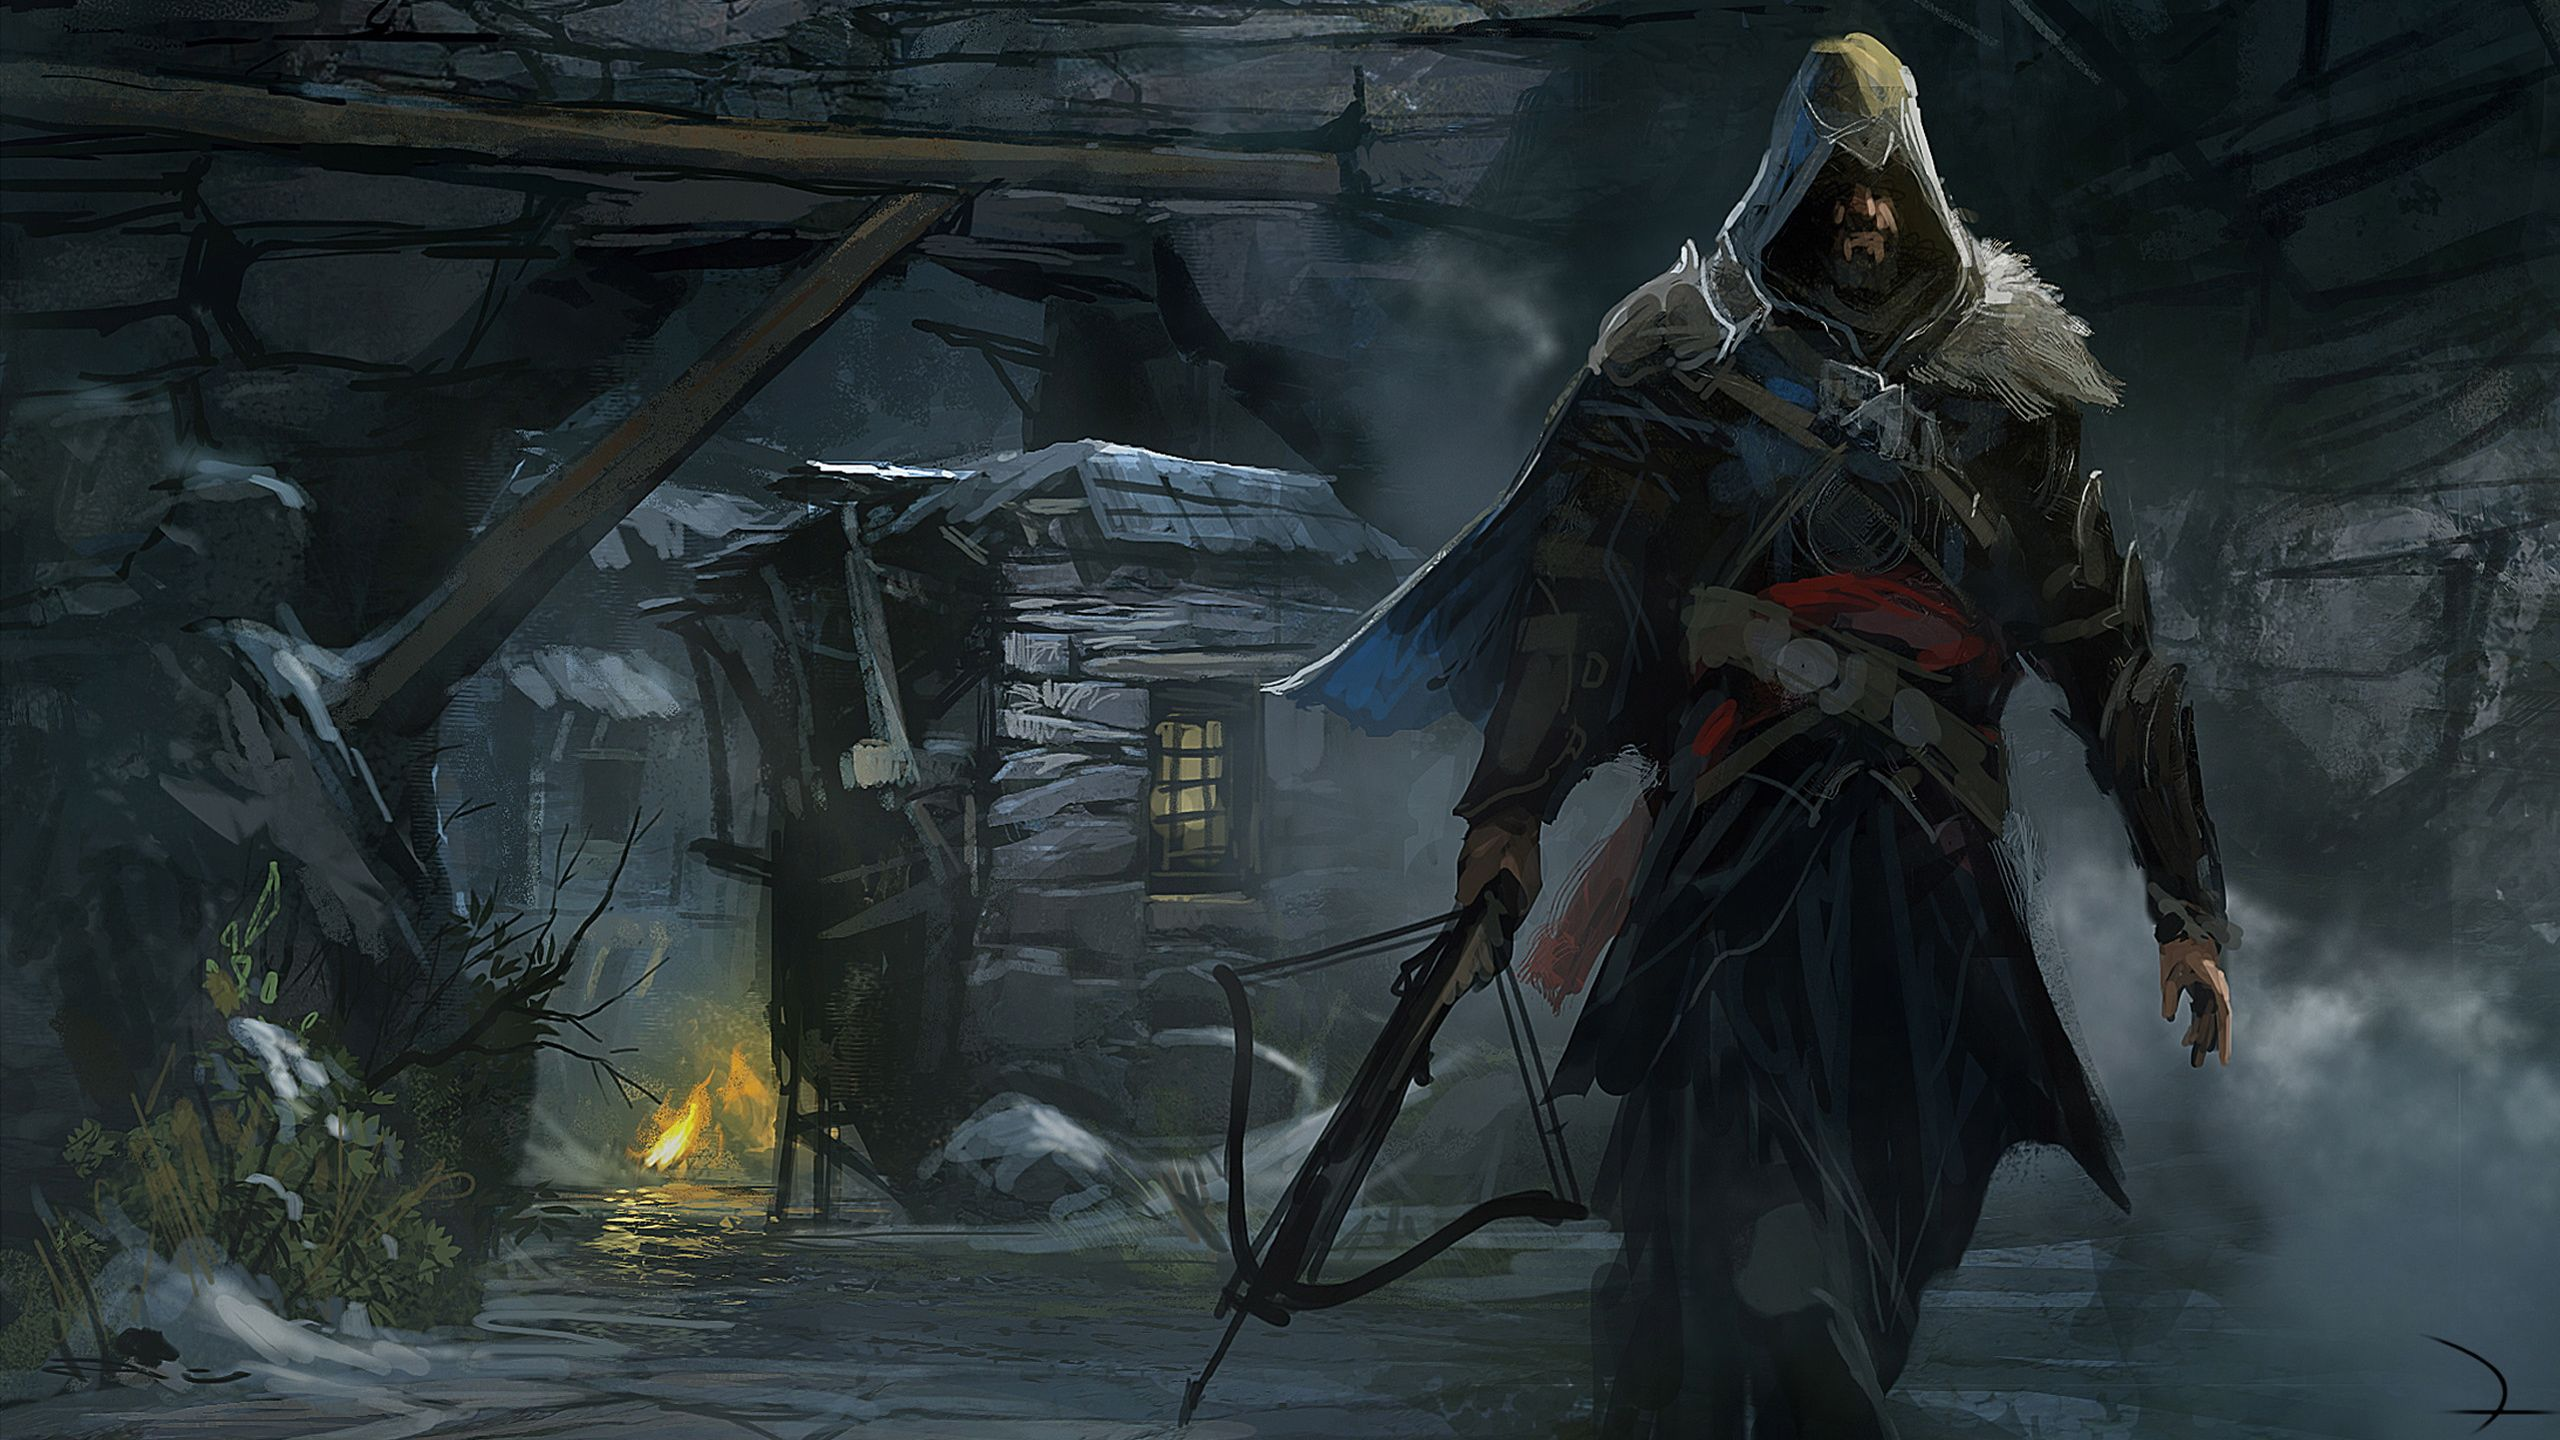 pin by angelia brown on assassins creed pinterest assassins